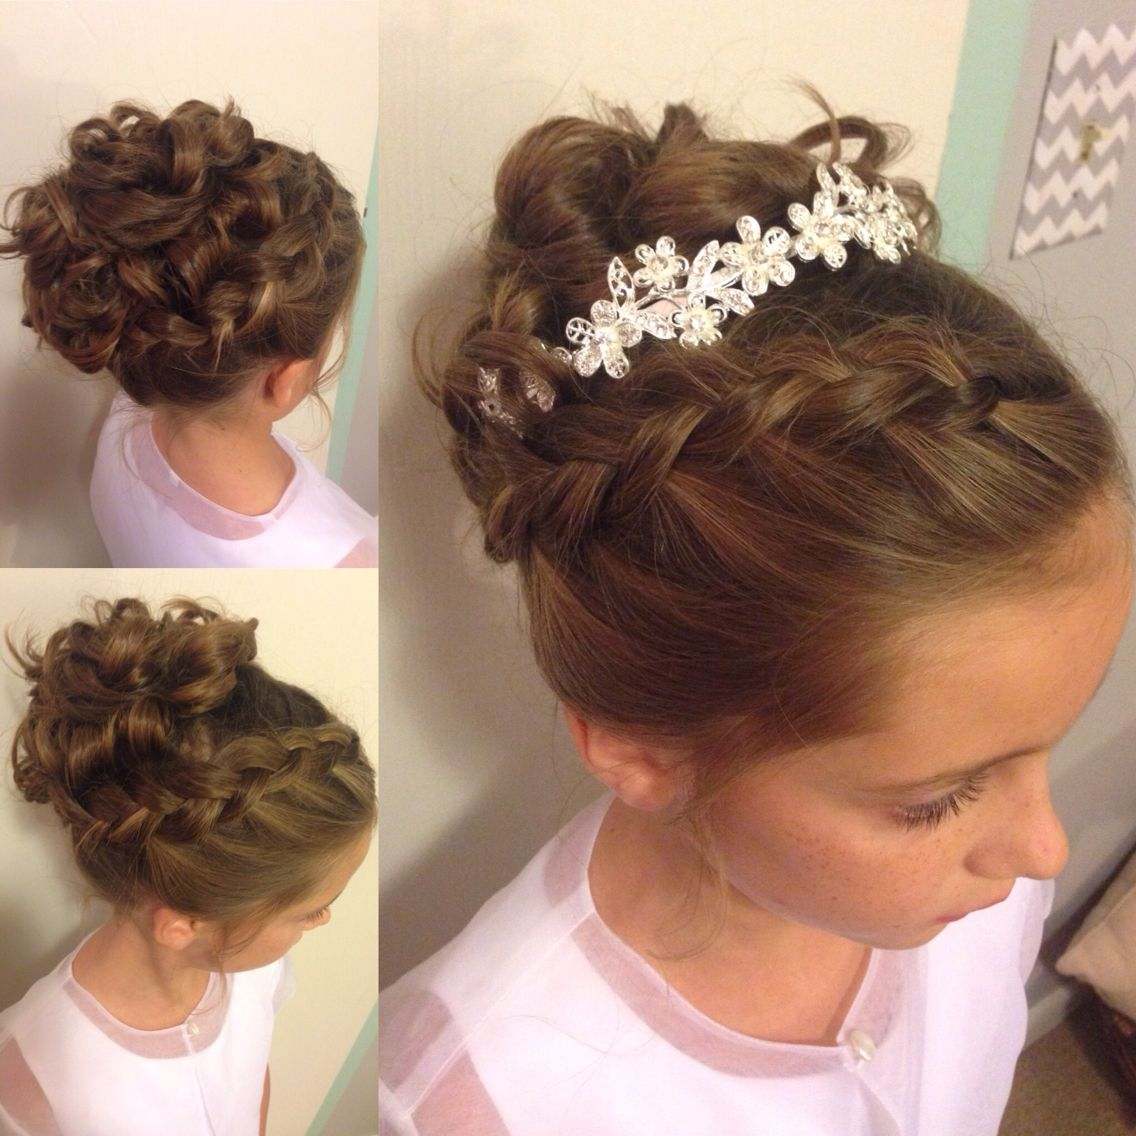 Wedding Hairstyle Entrancing Little Girl Updowedding Hairstyle Instagram Camfamsisters